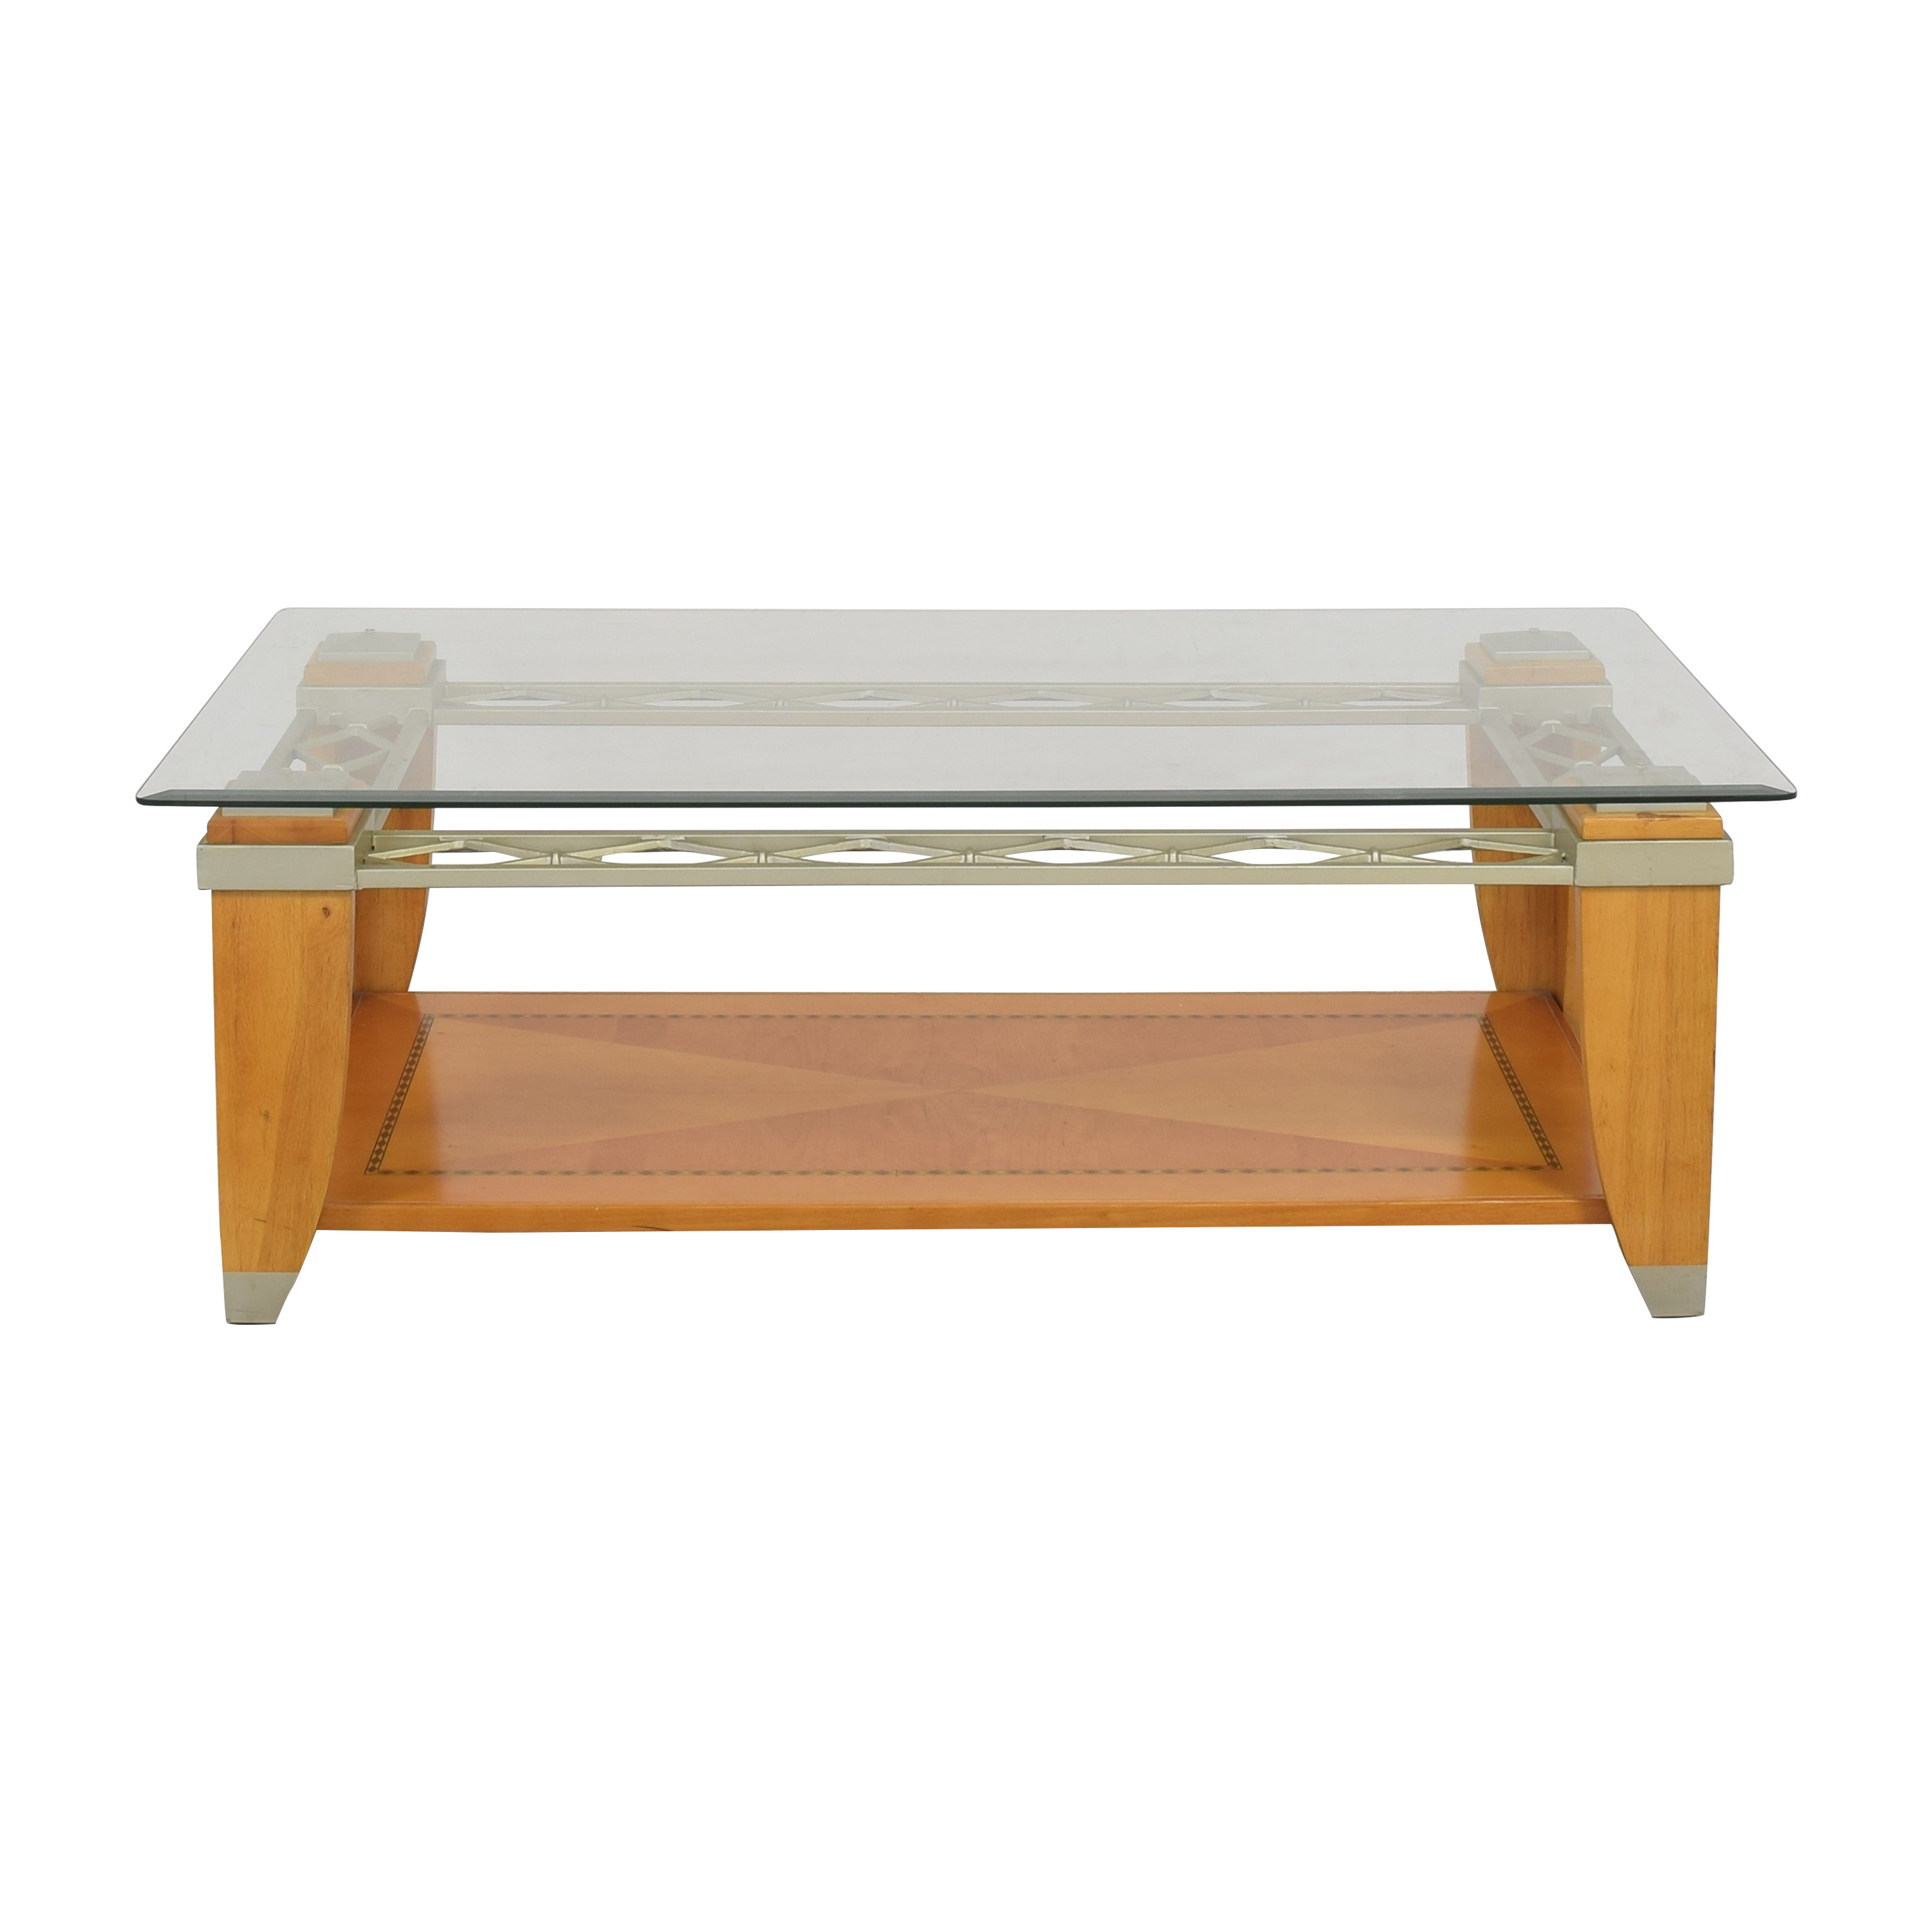 Klaussner Klaussner Tiered Coffee Table ma